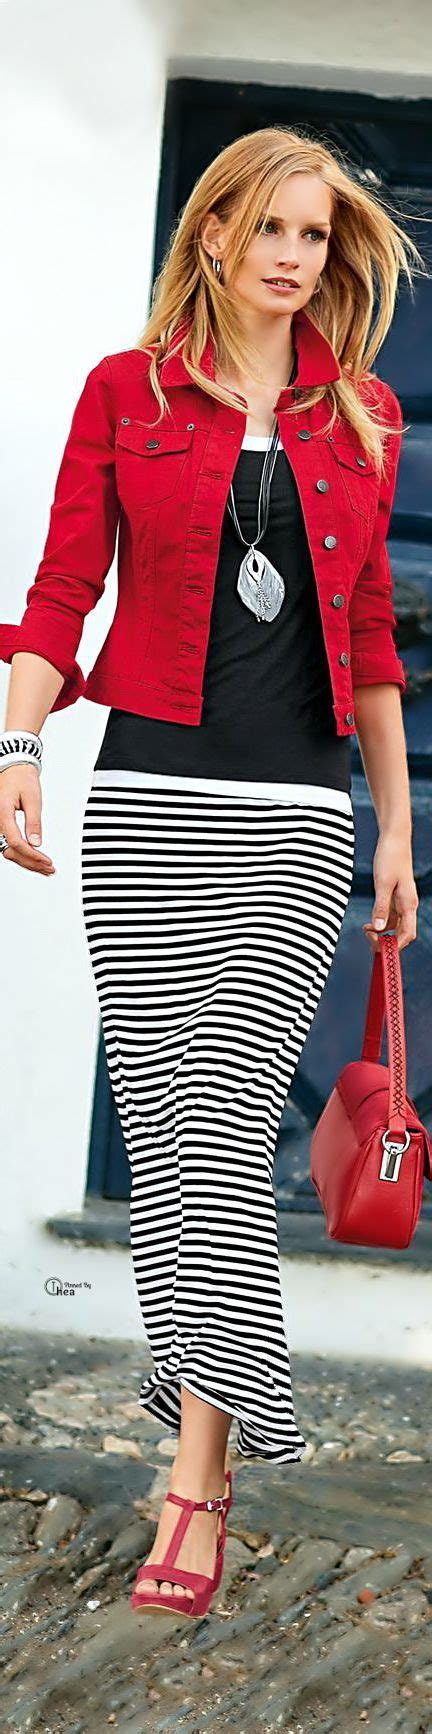 asymmetrical striped skirt 39 fall ideas to try now 2018